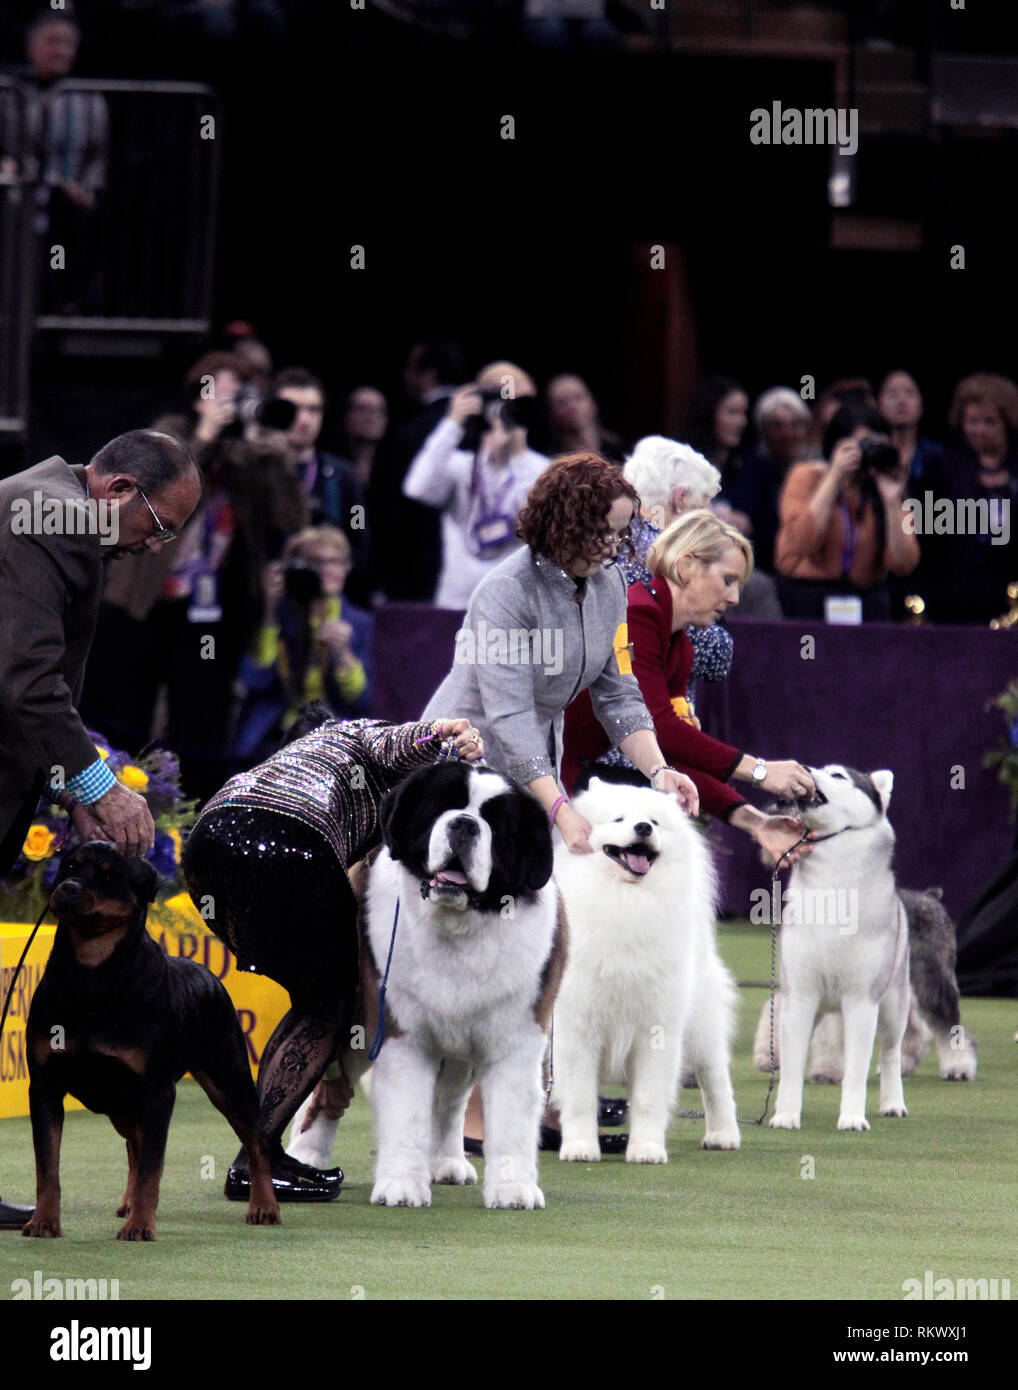 New York, USA. 12th Feb 2019. Westminster Dog Show - New York City, 12 February, 2019:  Working Group dogs awaiting final judging at the 143rd Annual Westminster Dog Show, Tuesday evening at Madison Square Garden in New York City. Credit: Adam Stoltman/Alamy Live News Stock Photo